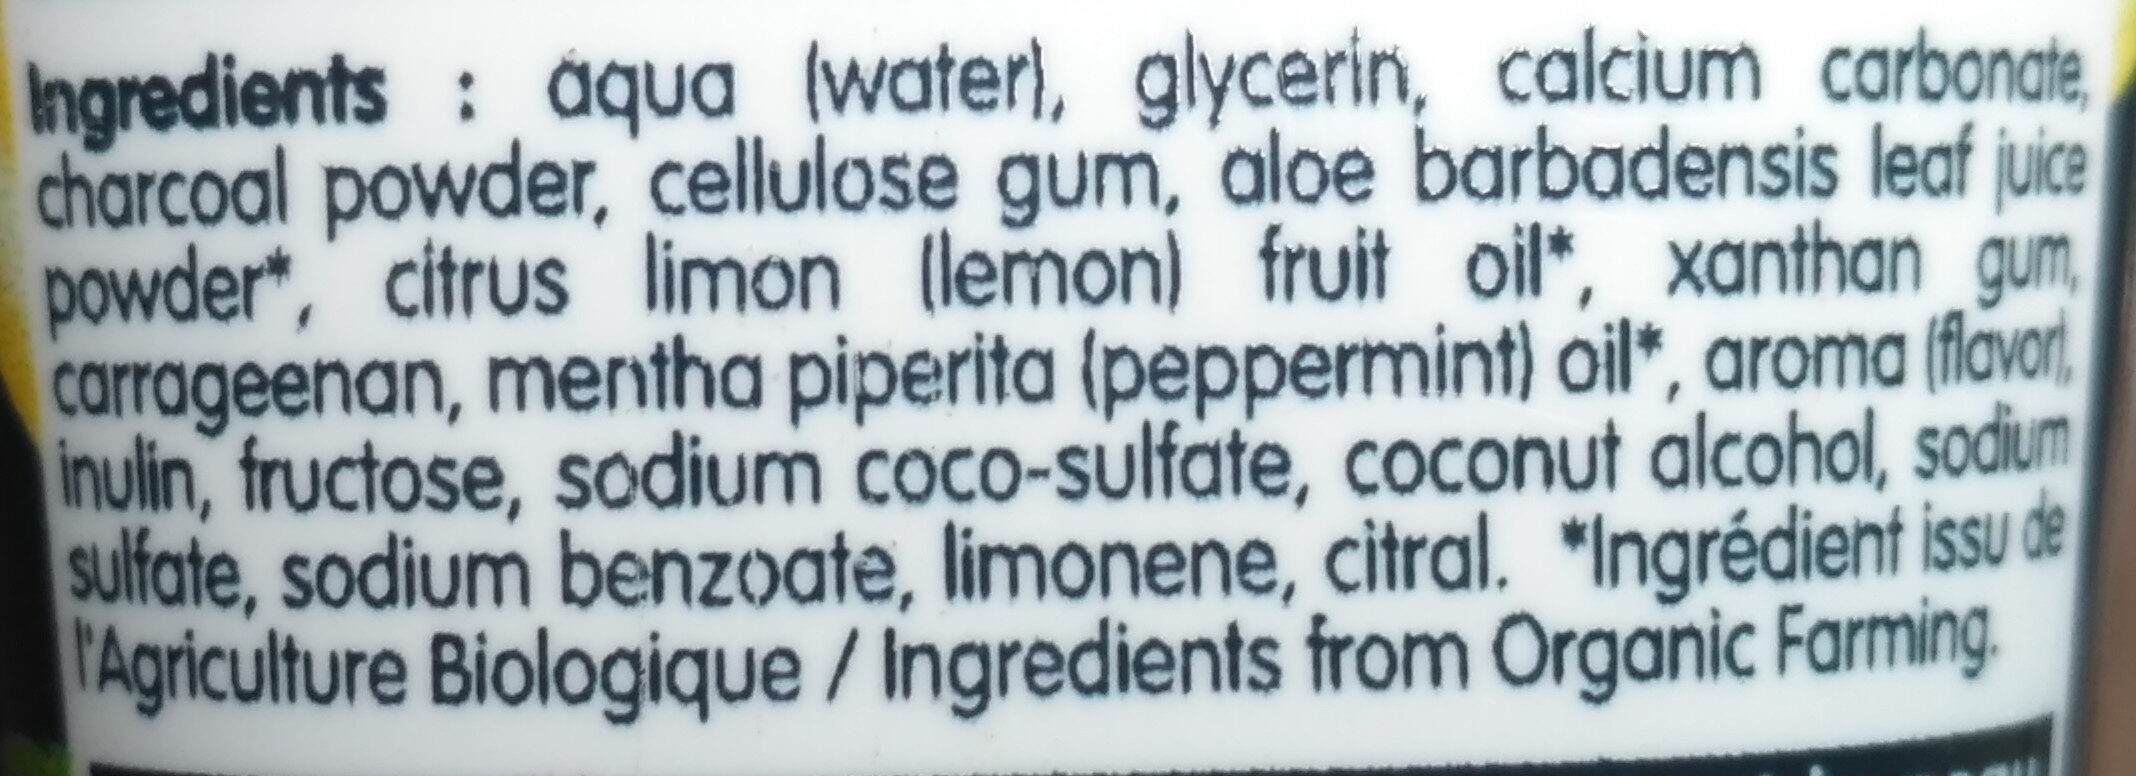 Dentifrice charbon végétal - Ingredients - en